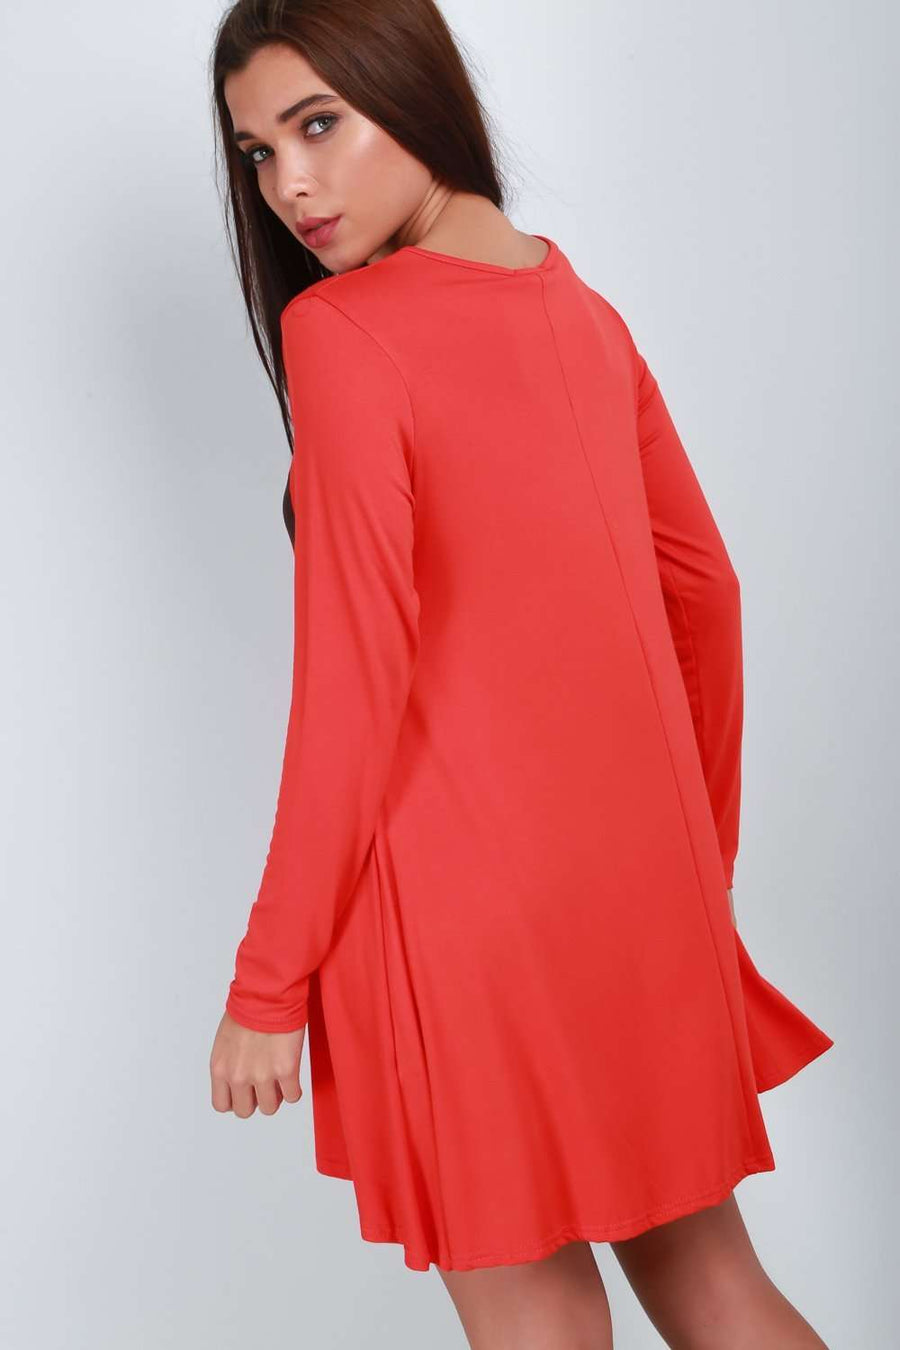 Long Sleeve Scary Pumpkin Swing Dress - bejealous-com